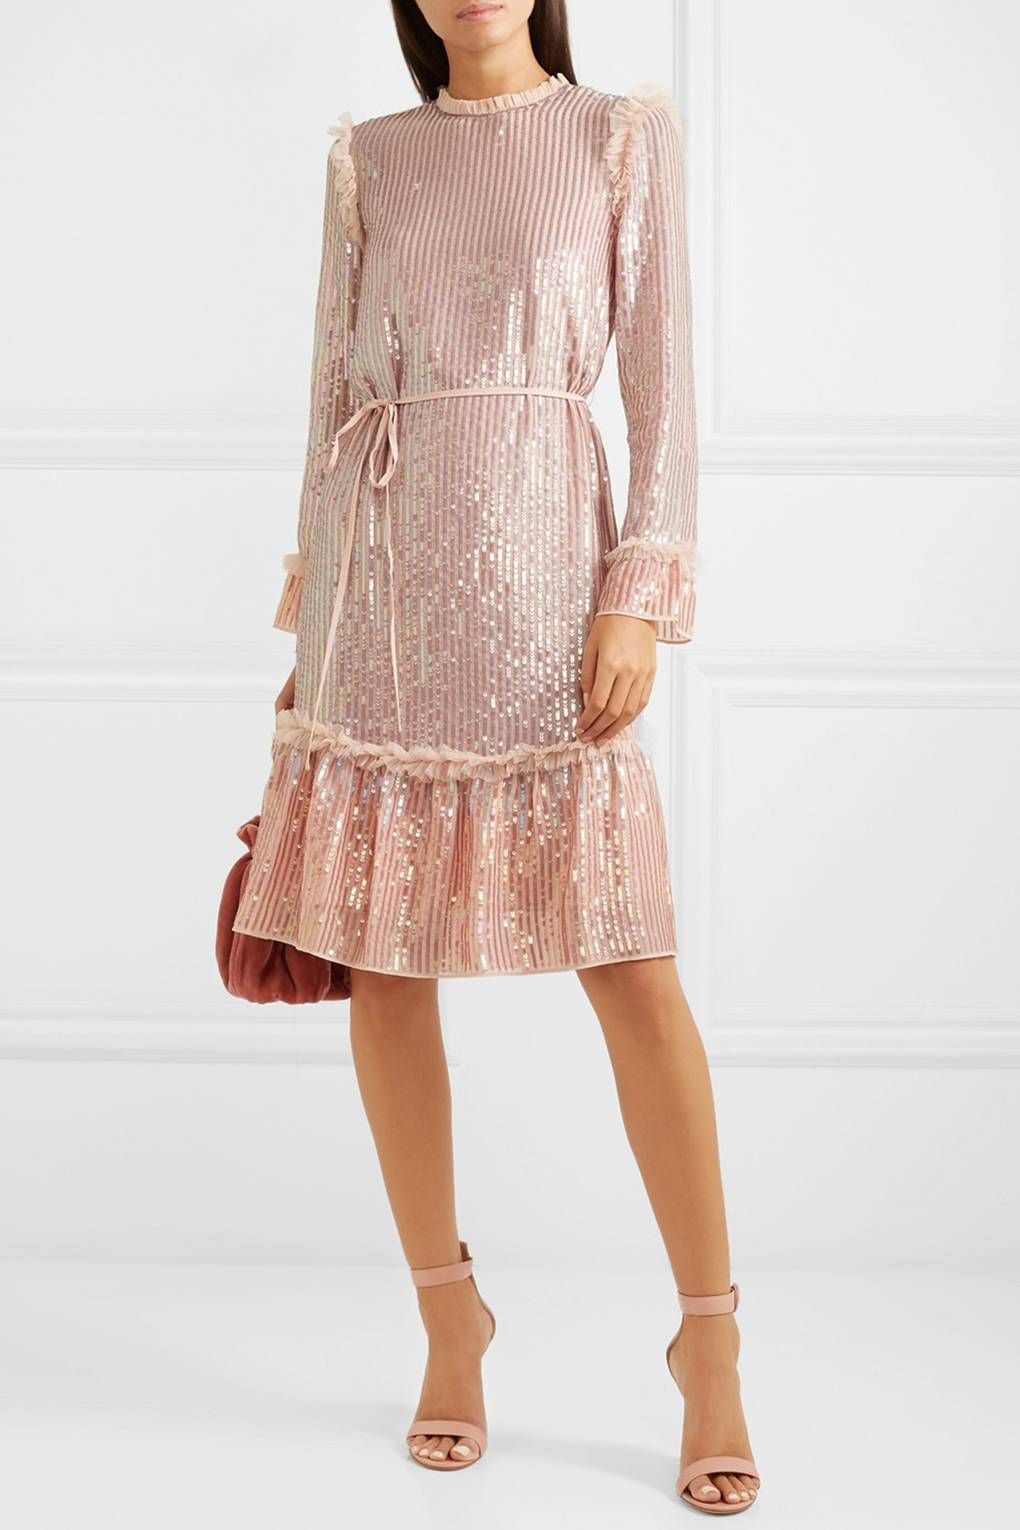 d57bae56e25 Chic Spring Wedding Guest Dresses - What To Wear To A Wedding In 2019